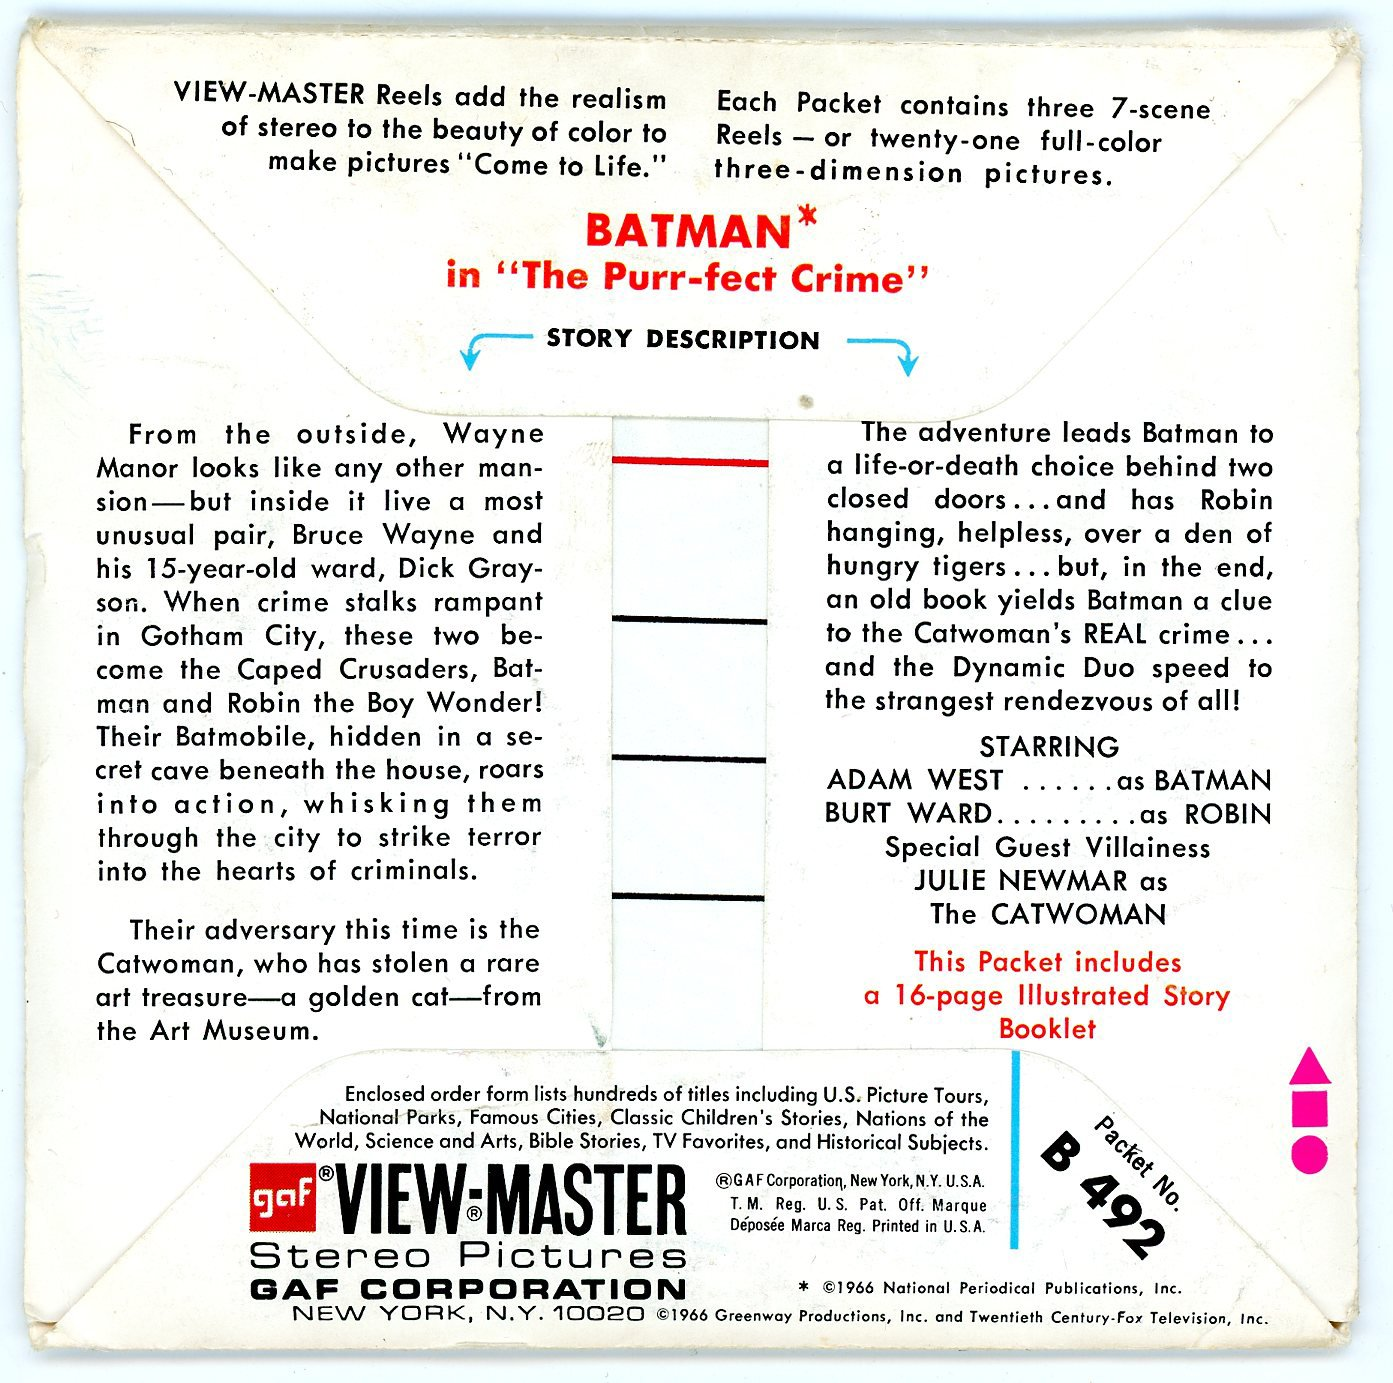 BATMAN View-Master 3 Reel Set - 21 3d Images - Adam West by View Master (Image #2)